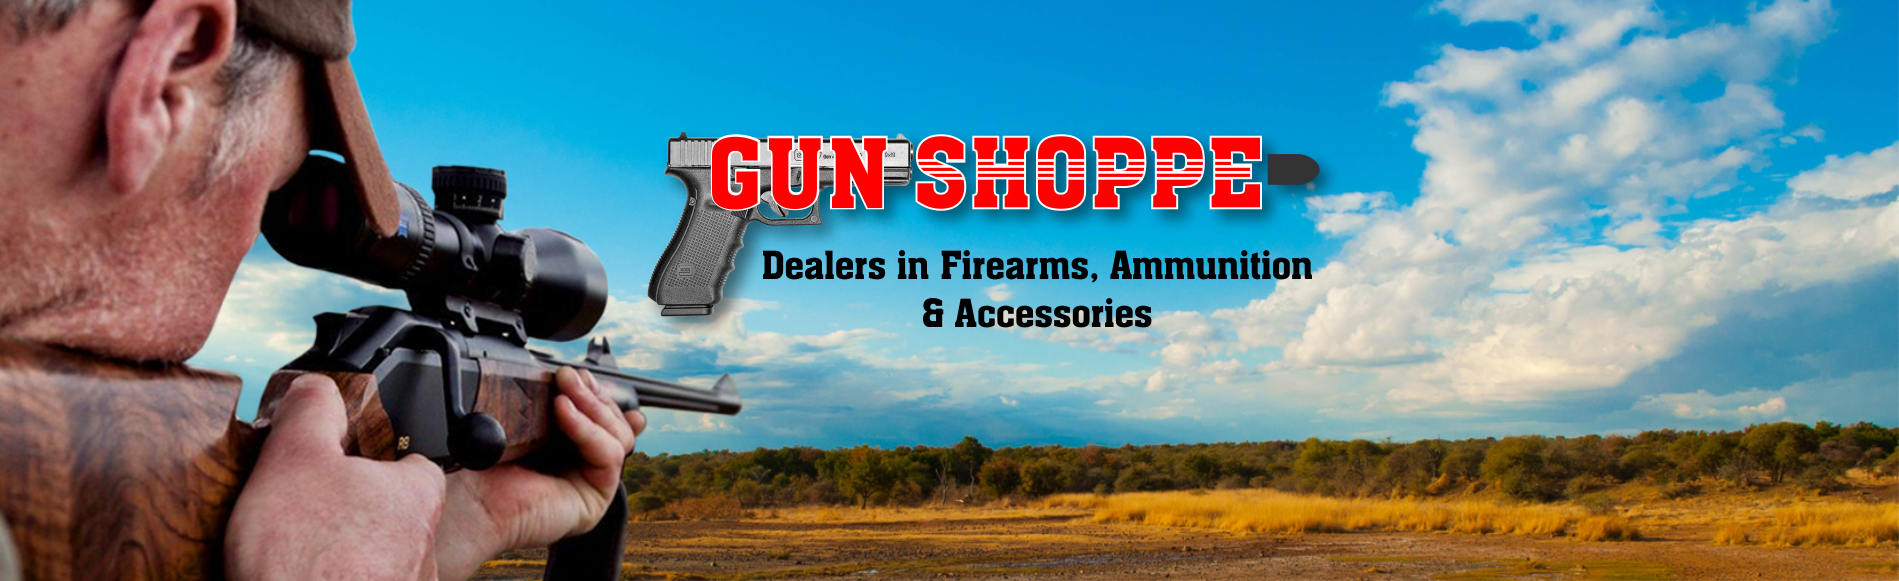 Gun-Shoppe-New-banner-001